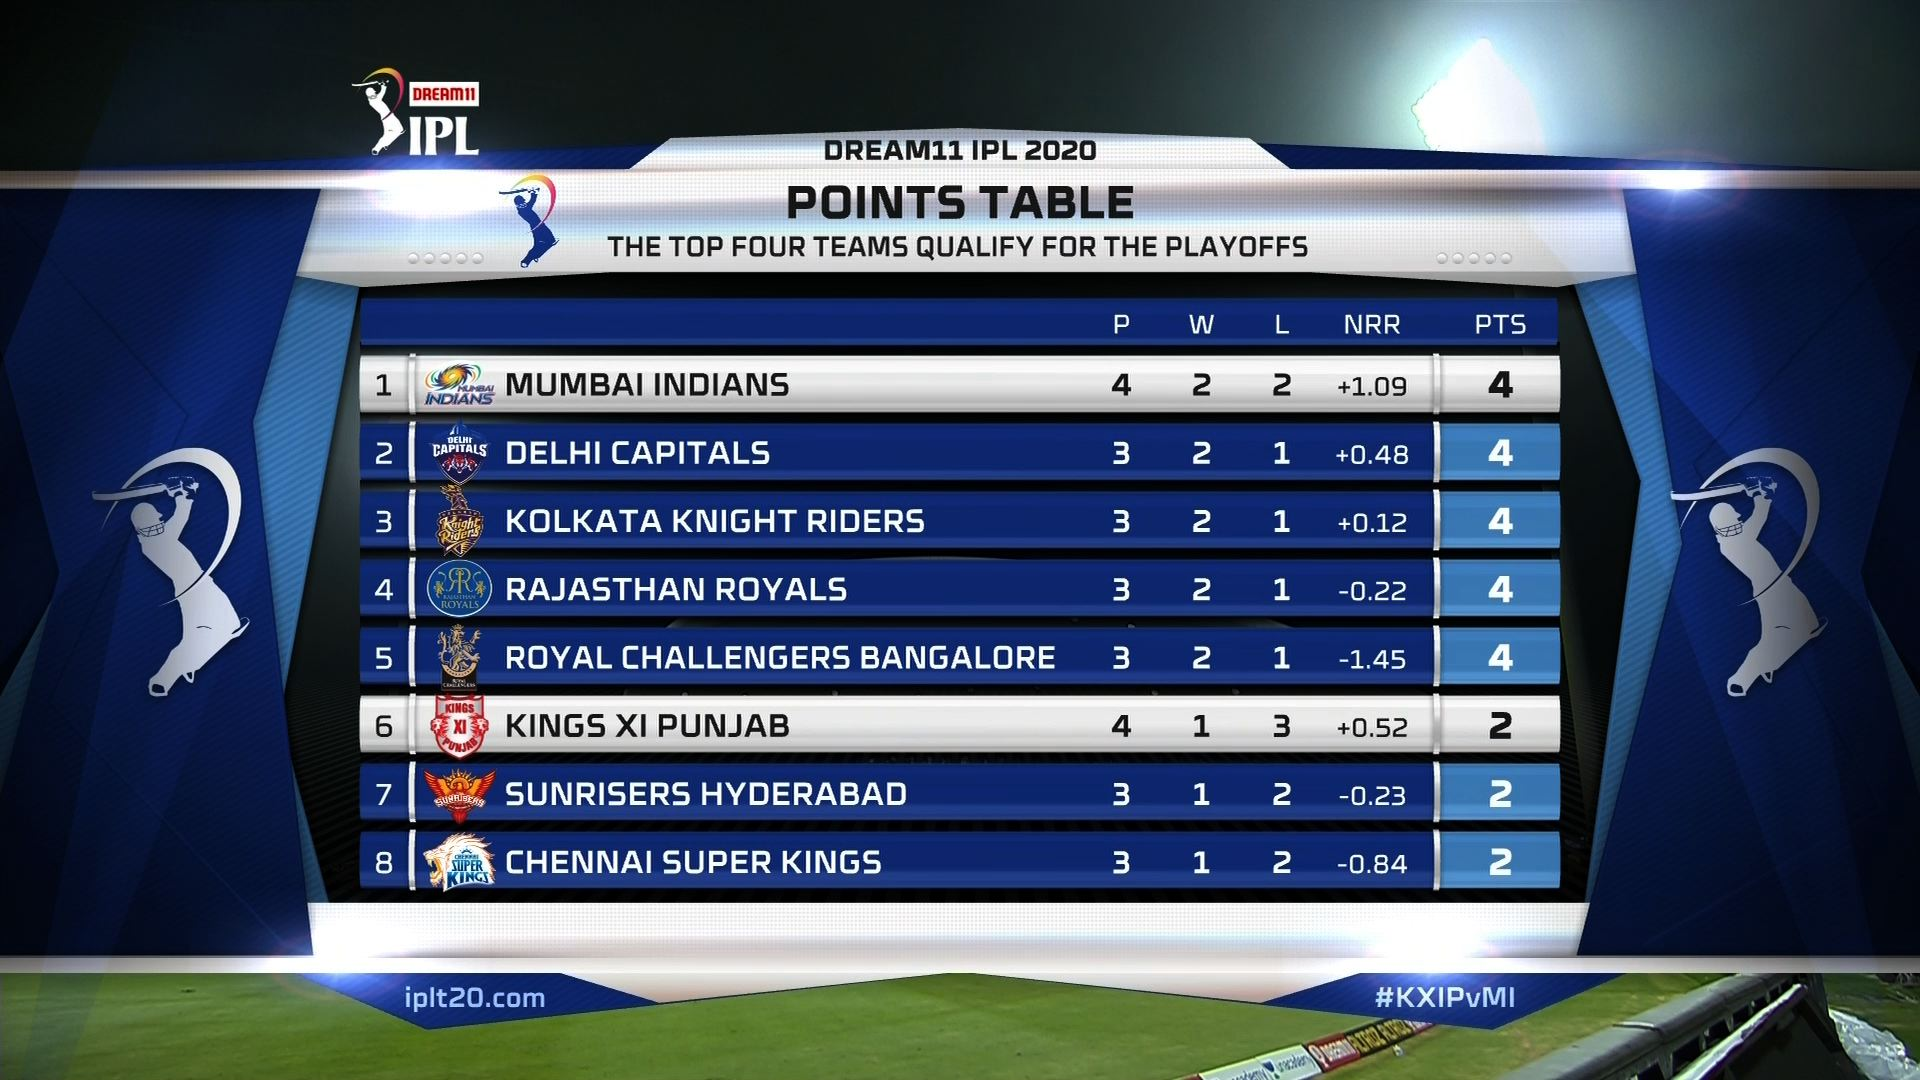 IPL 2020 Points Table